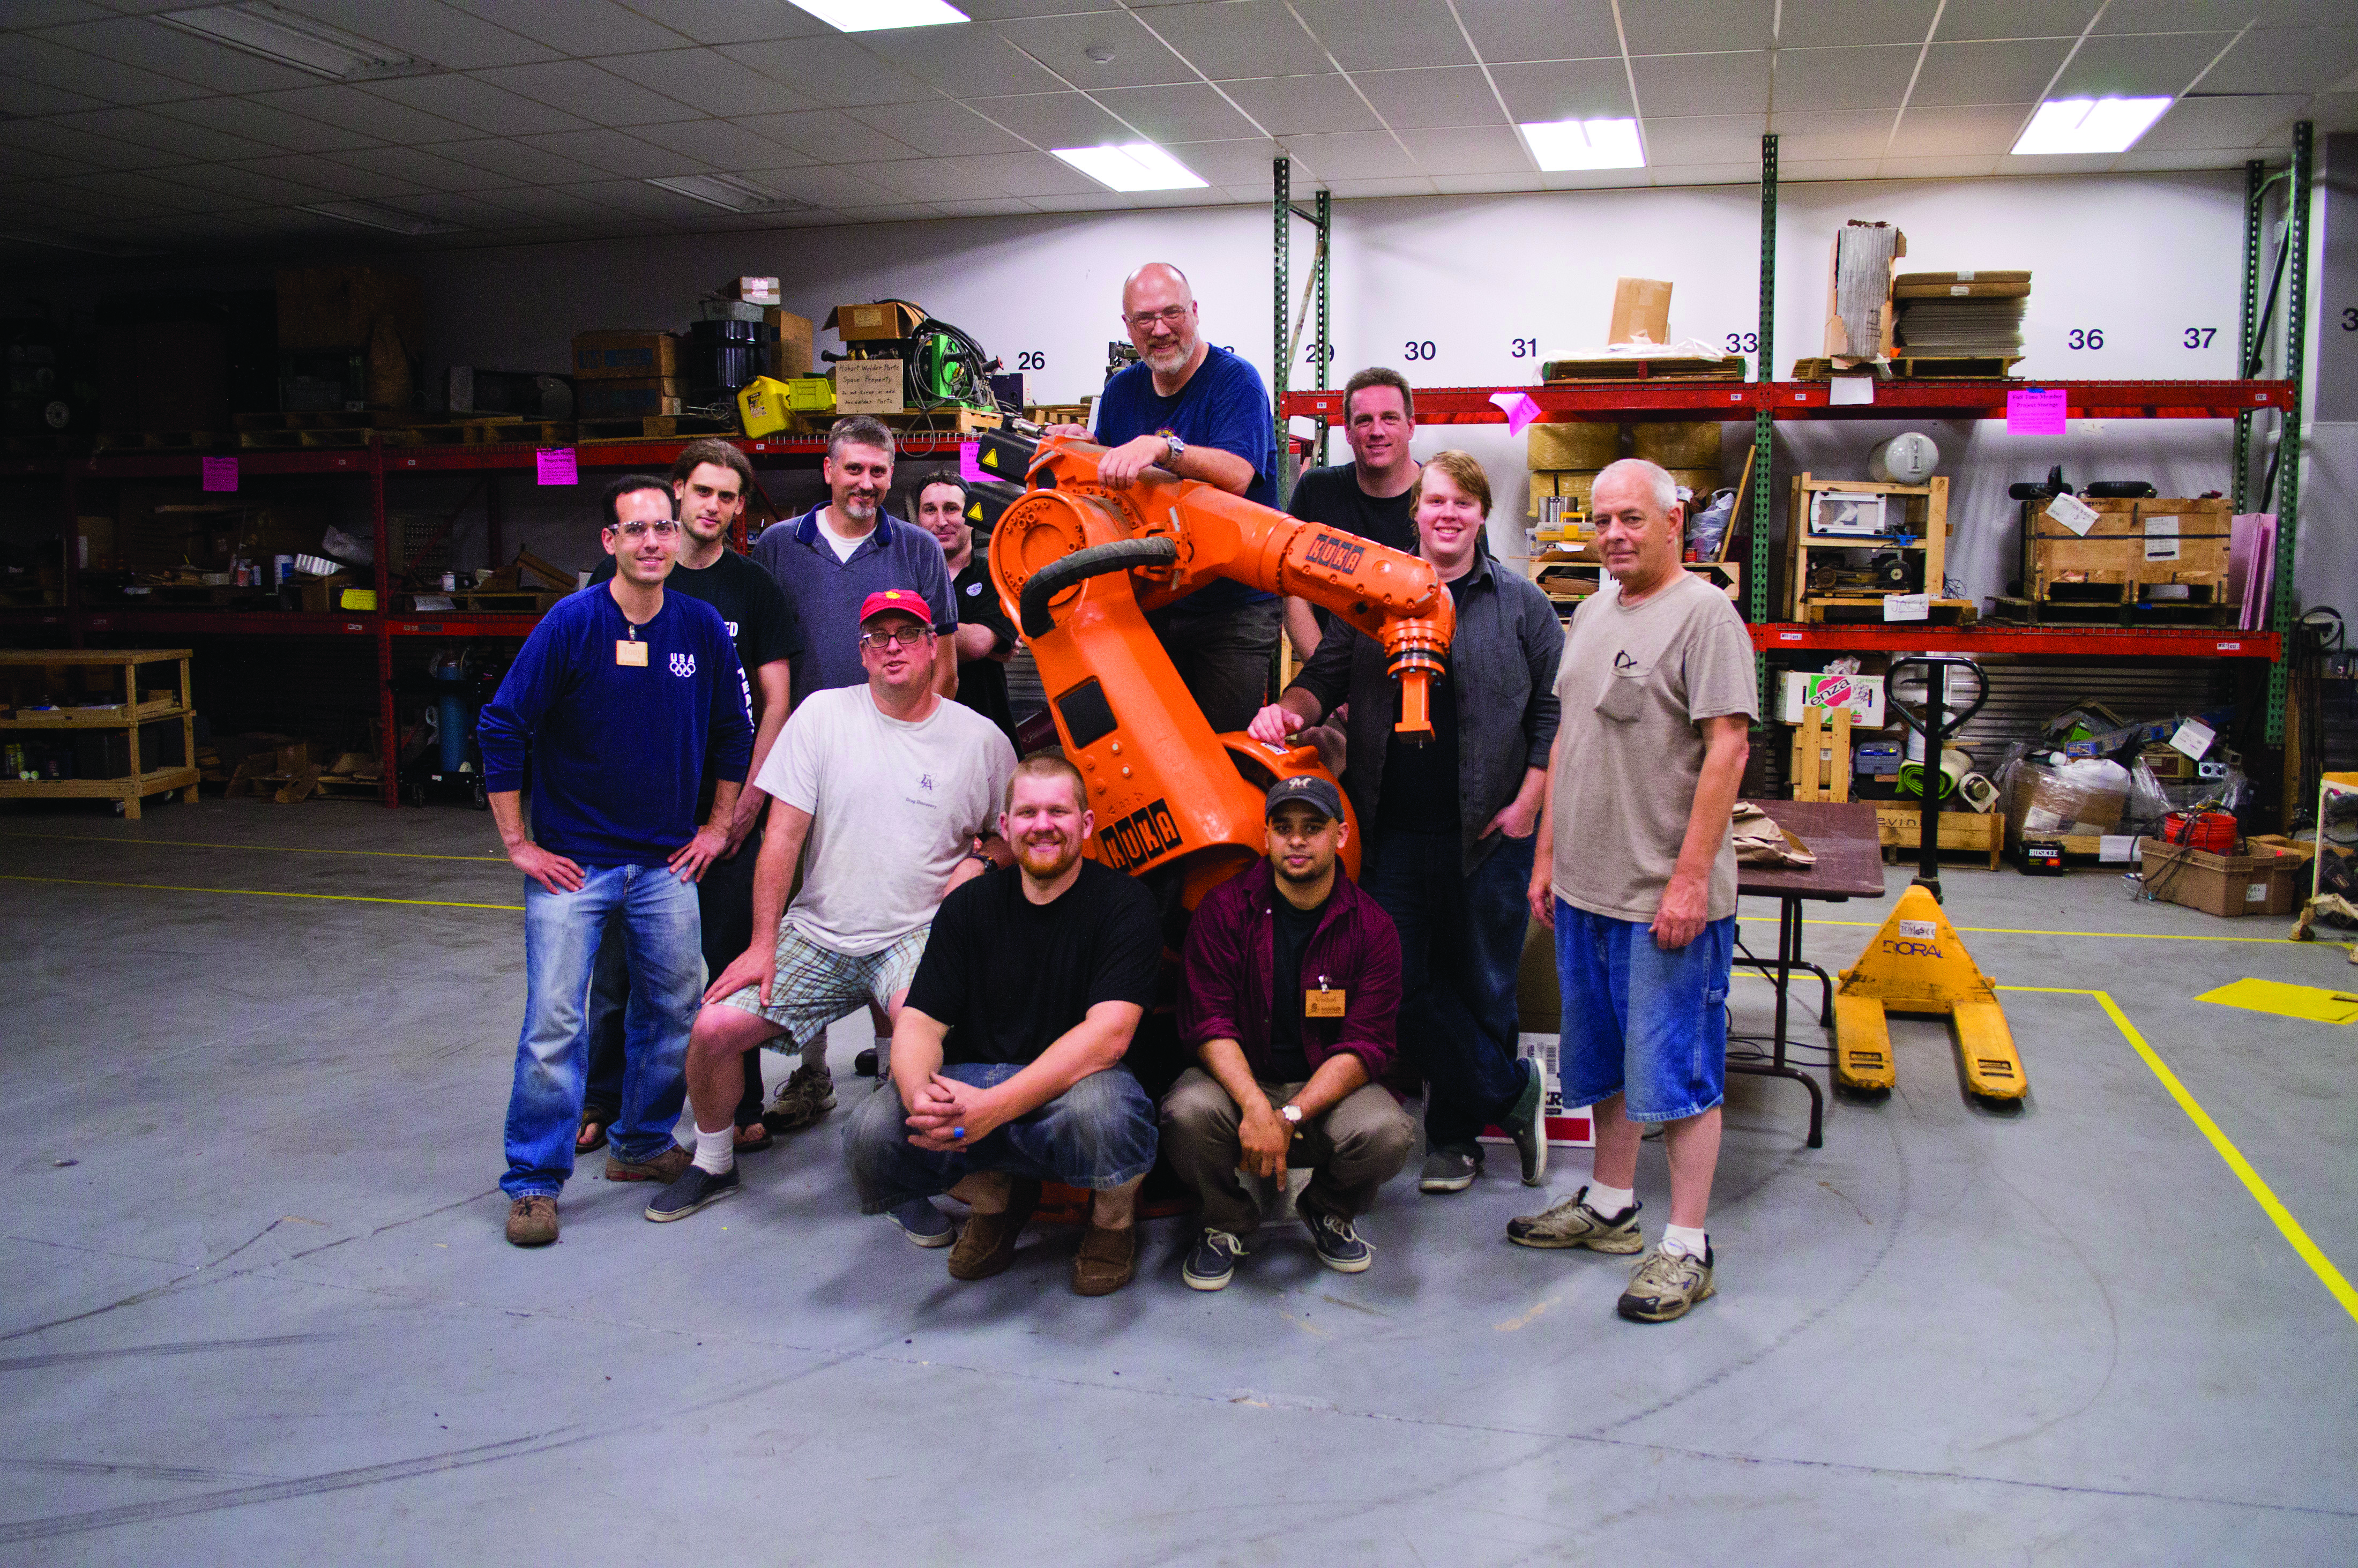 The crew from Milwaukee Makerspace, one of the organisations behind Maker Faire Milwaukee.